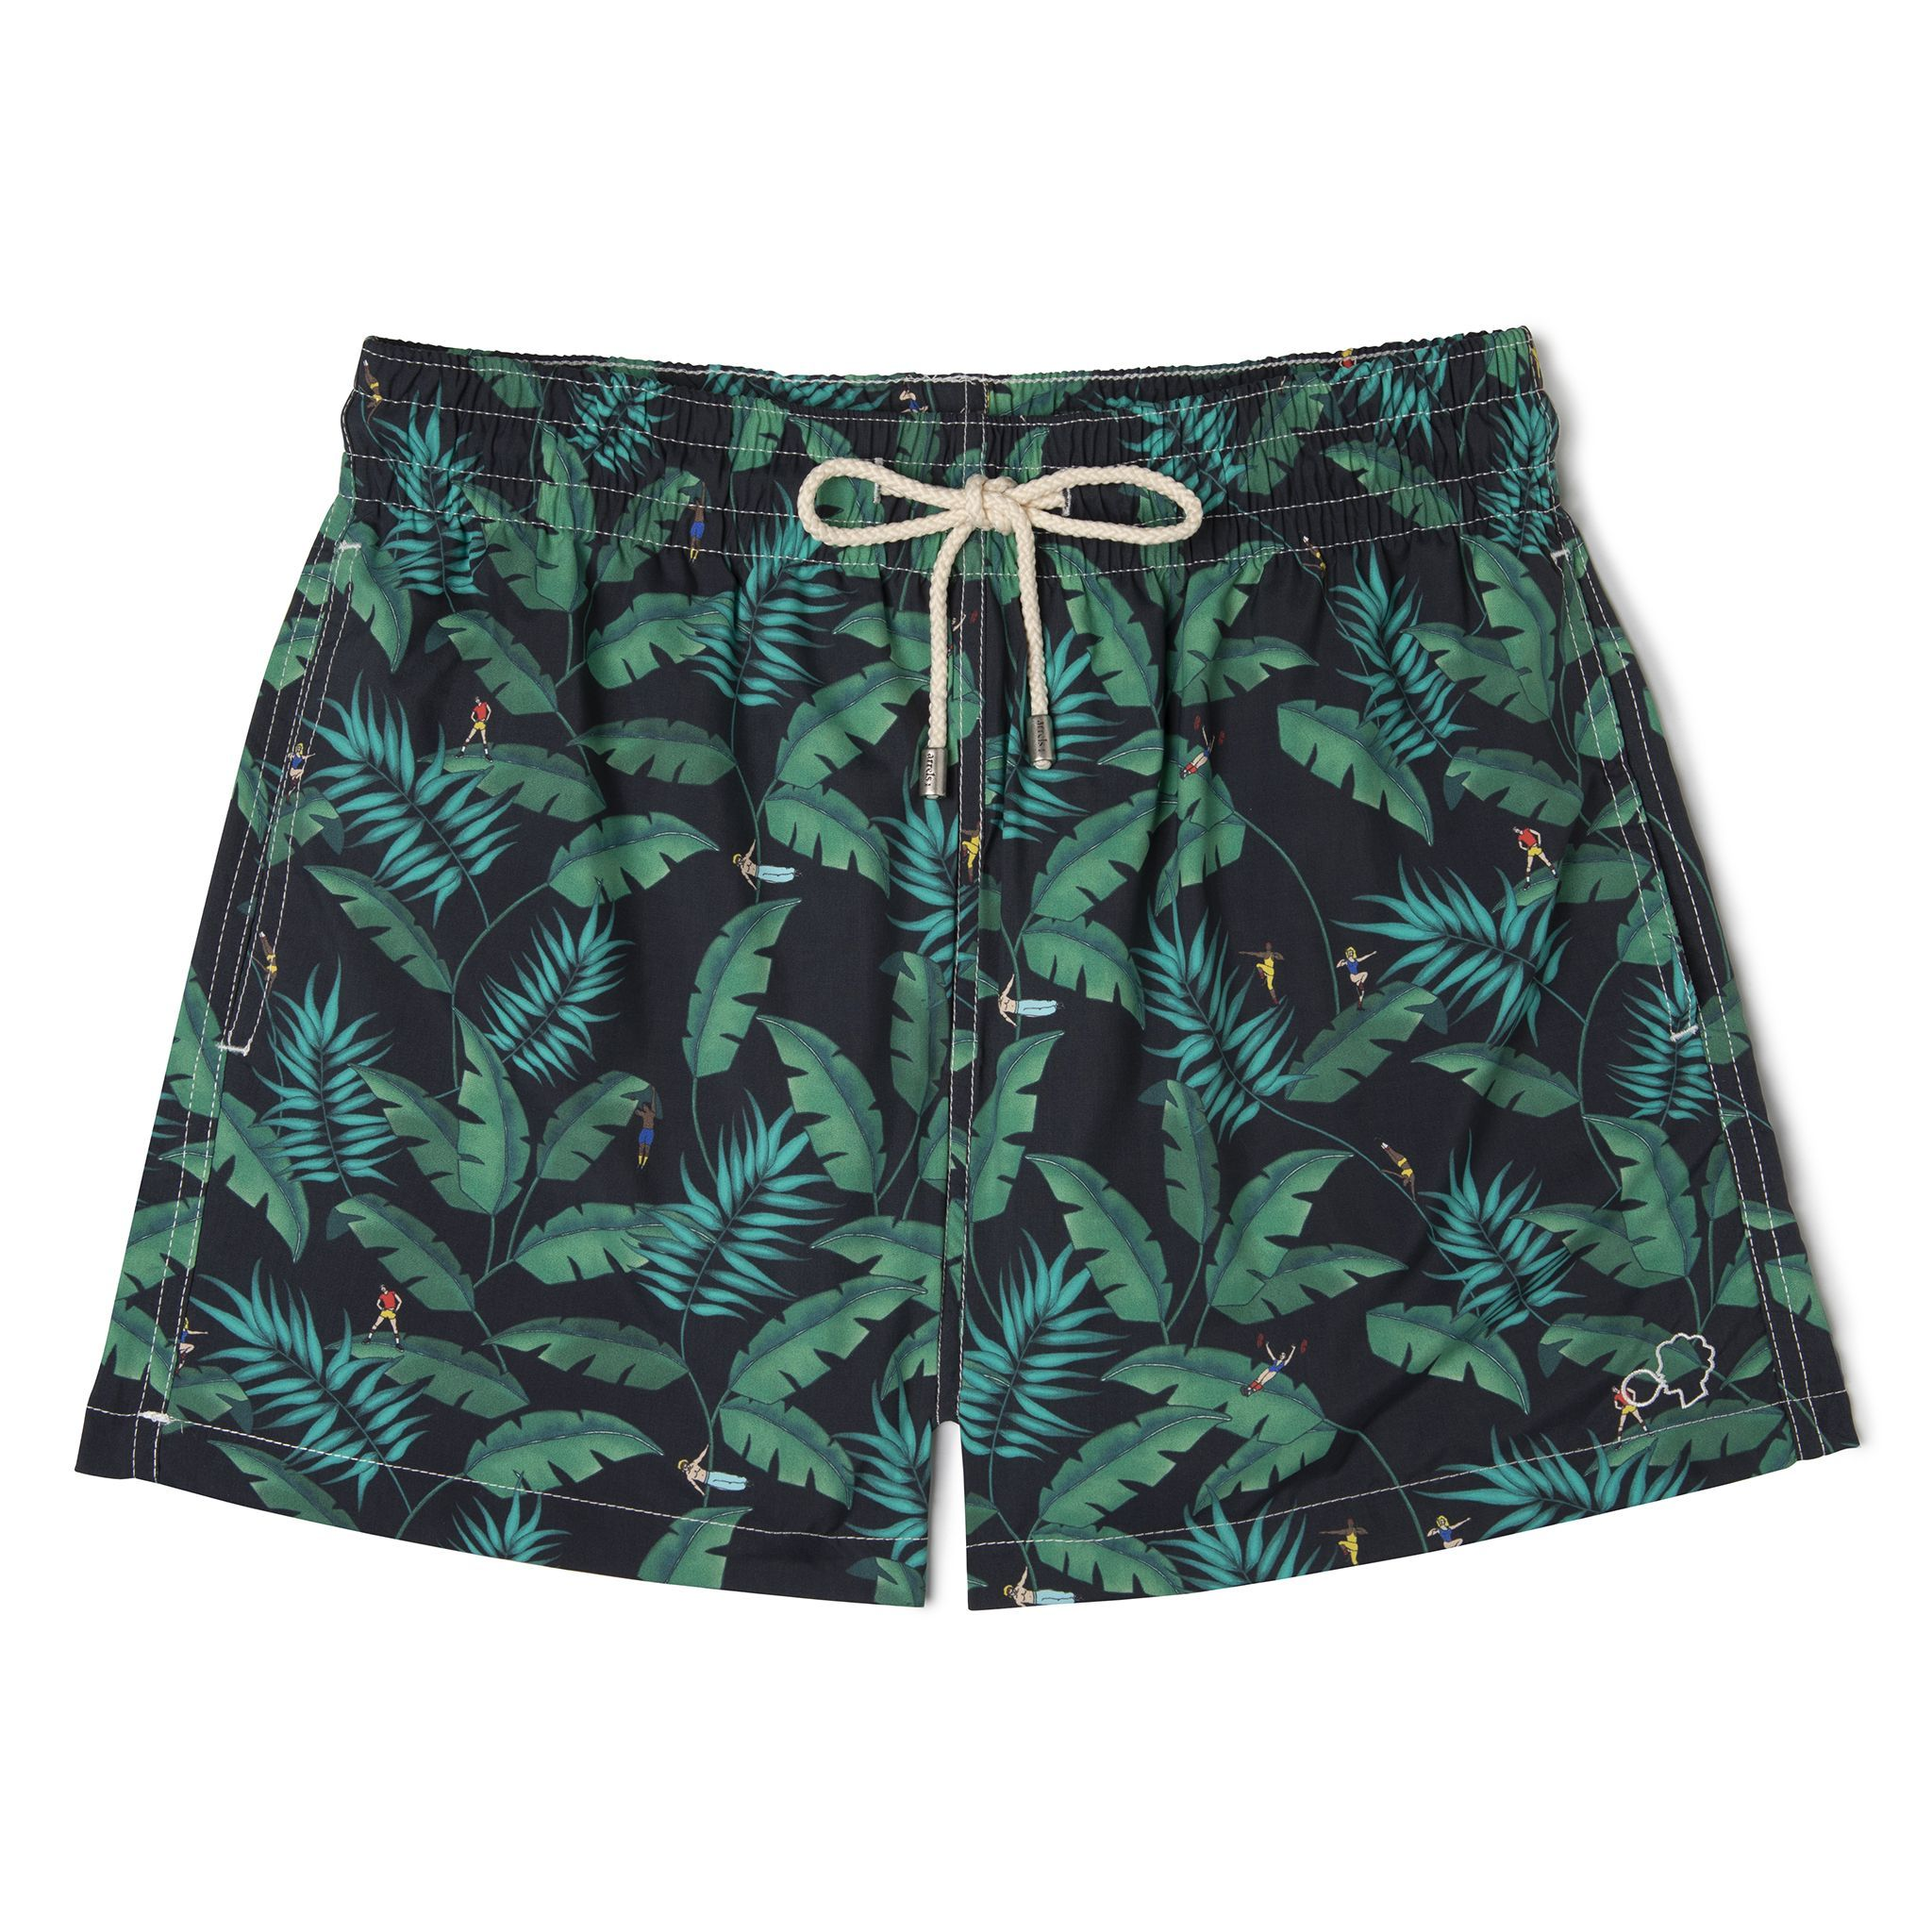 Short-Length Swim Shorts Black Gym